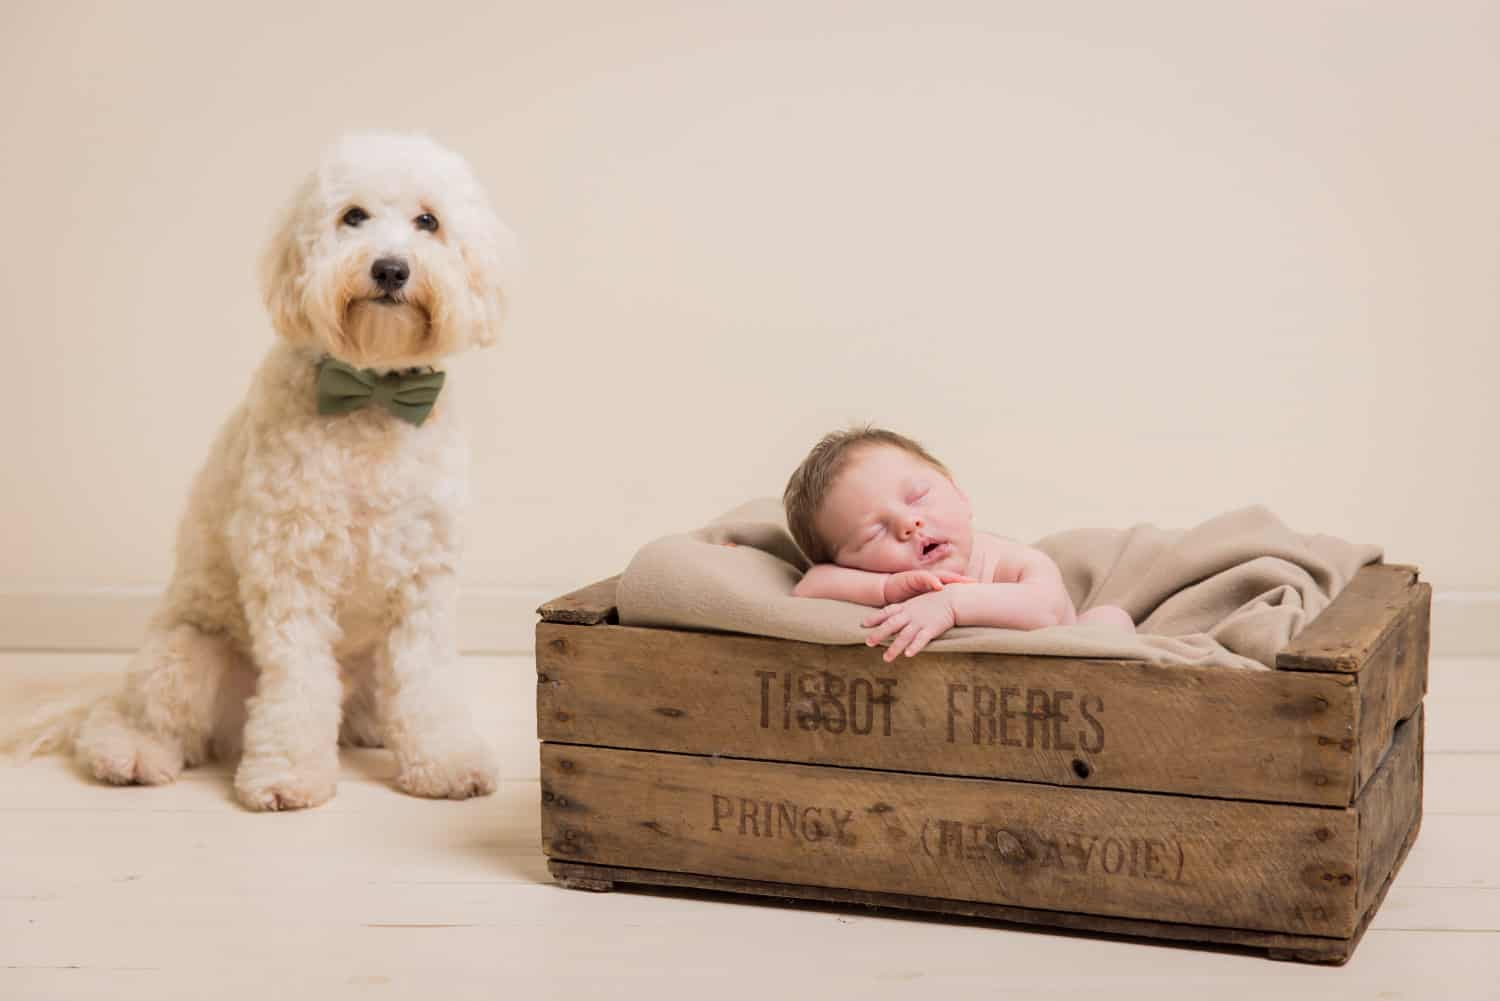 photoshoots for babies singapore baby is sleeping in a wooden box beside a white dog that's posing for the camera